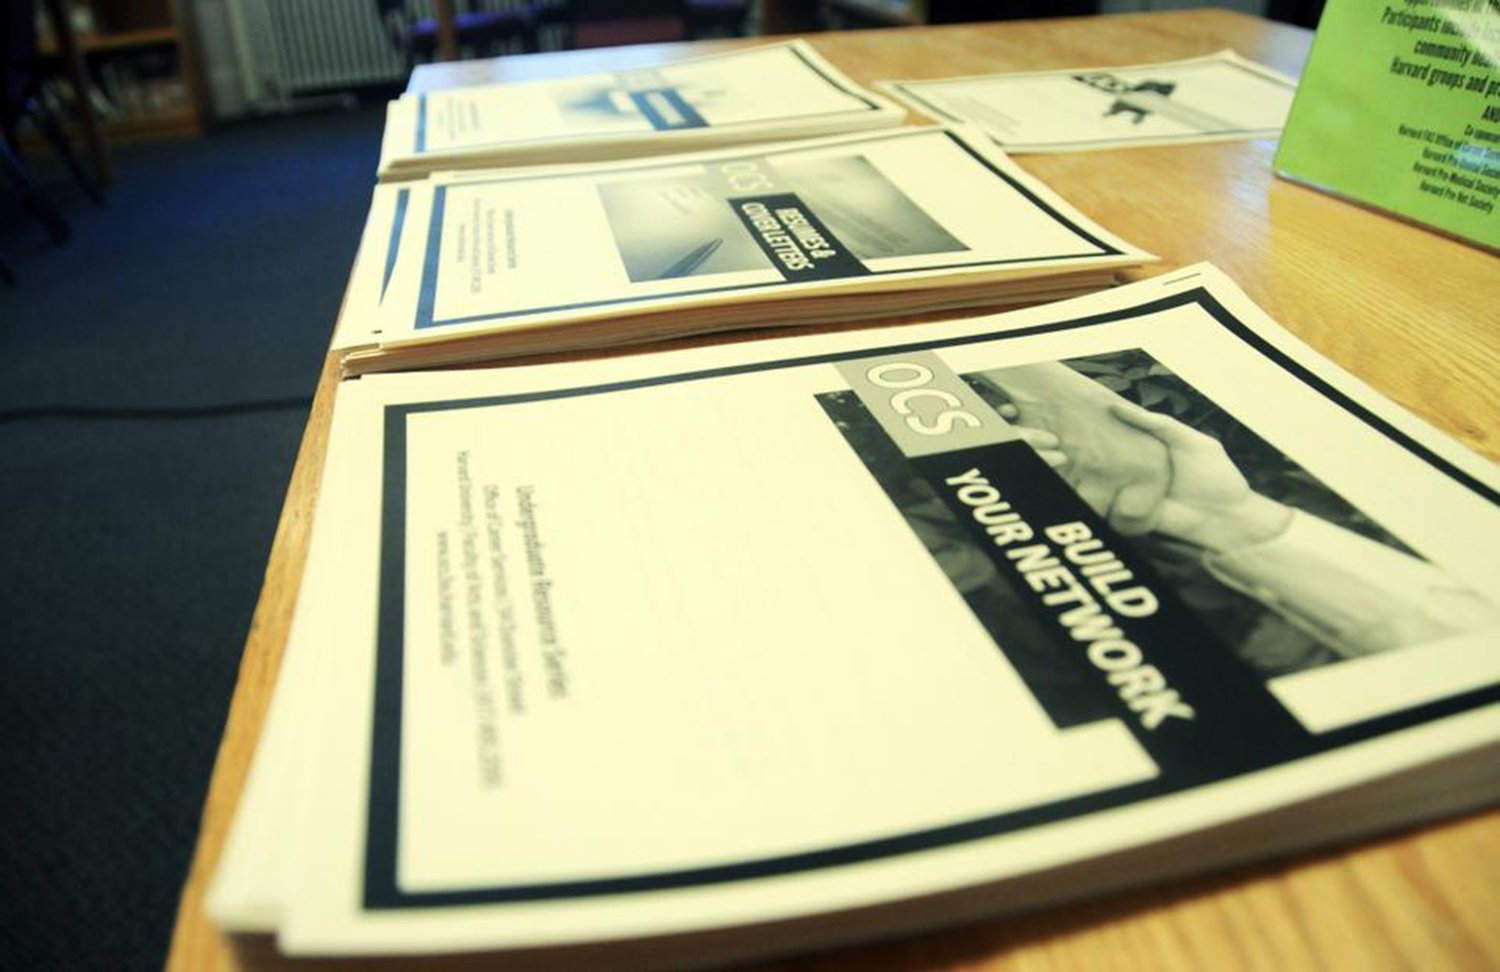 Pamphlets with networking tips were offered during a Job Search workshop at the Office of Career Services in 2011.